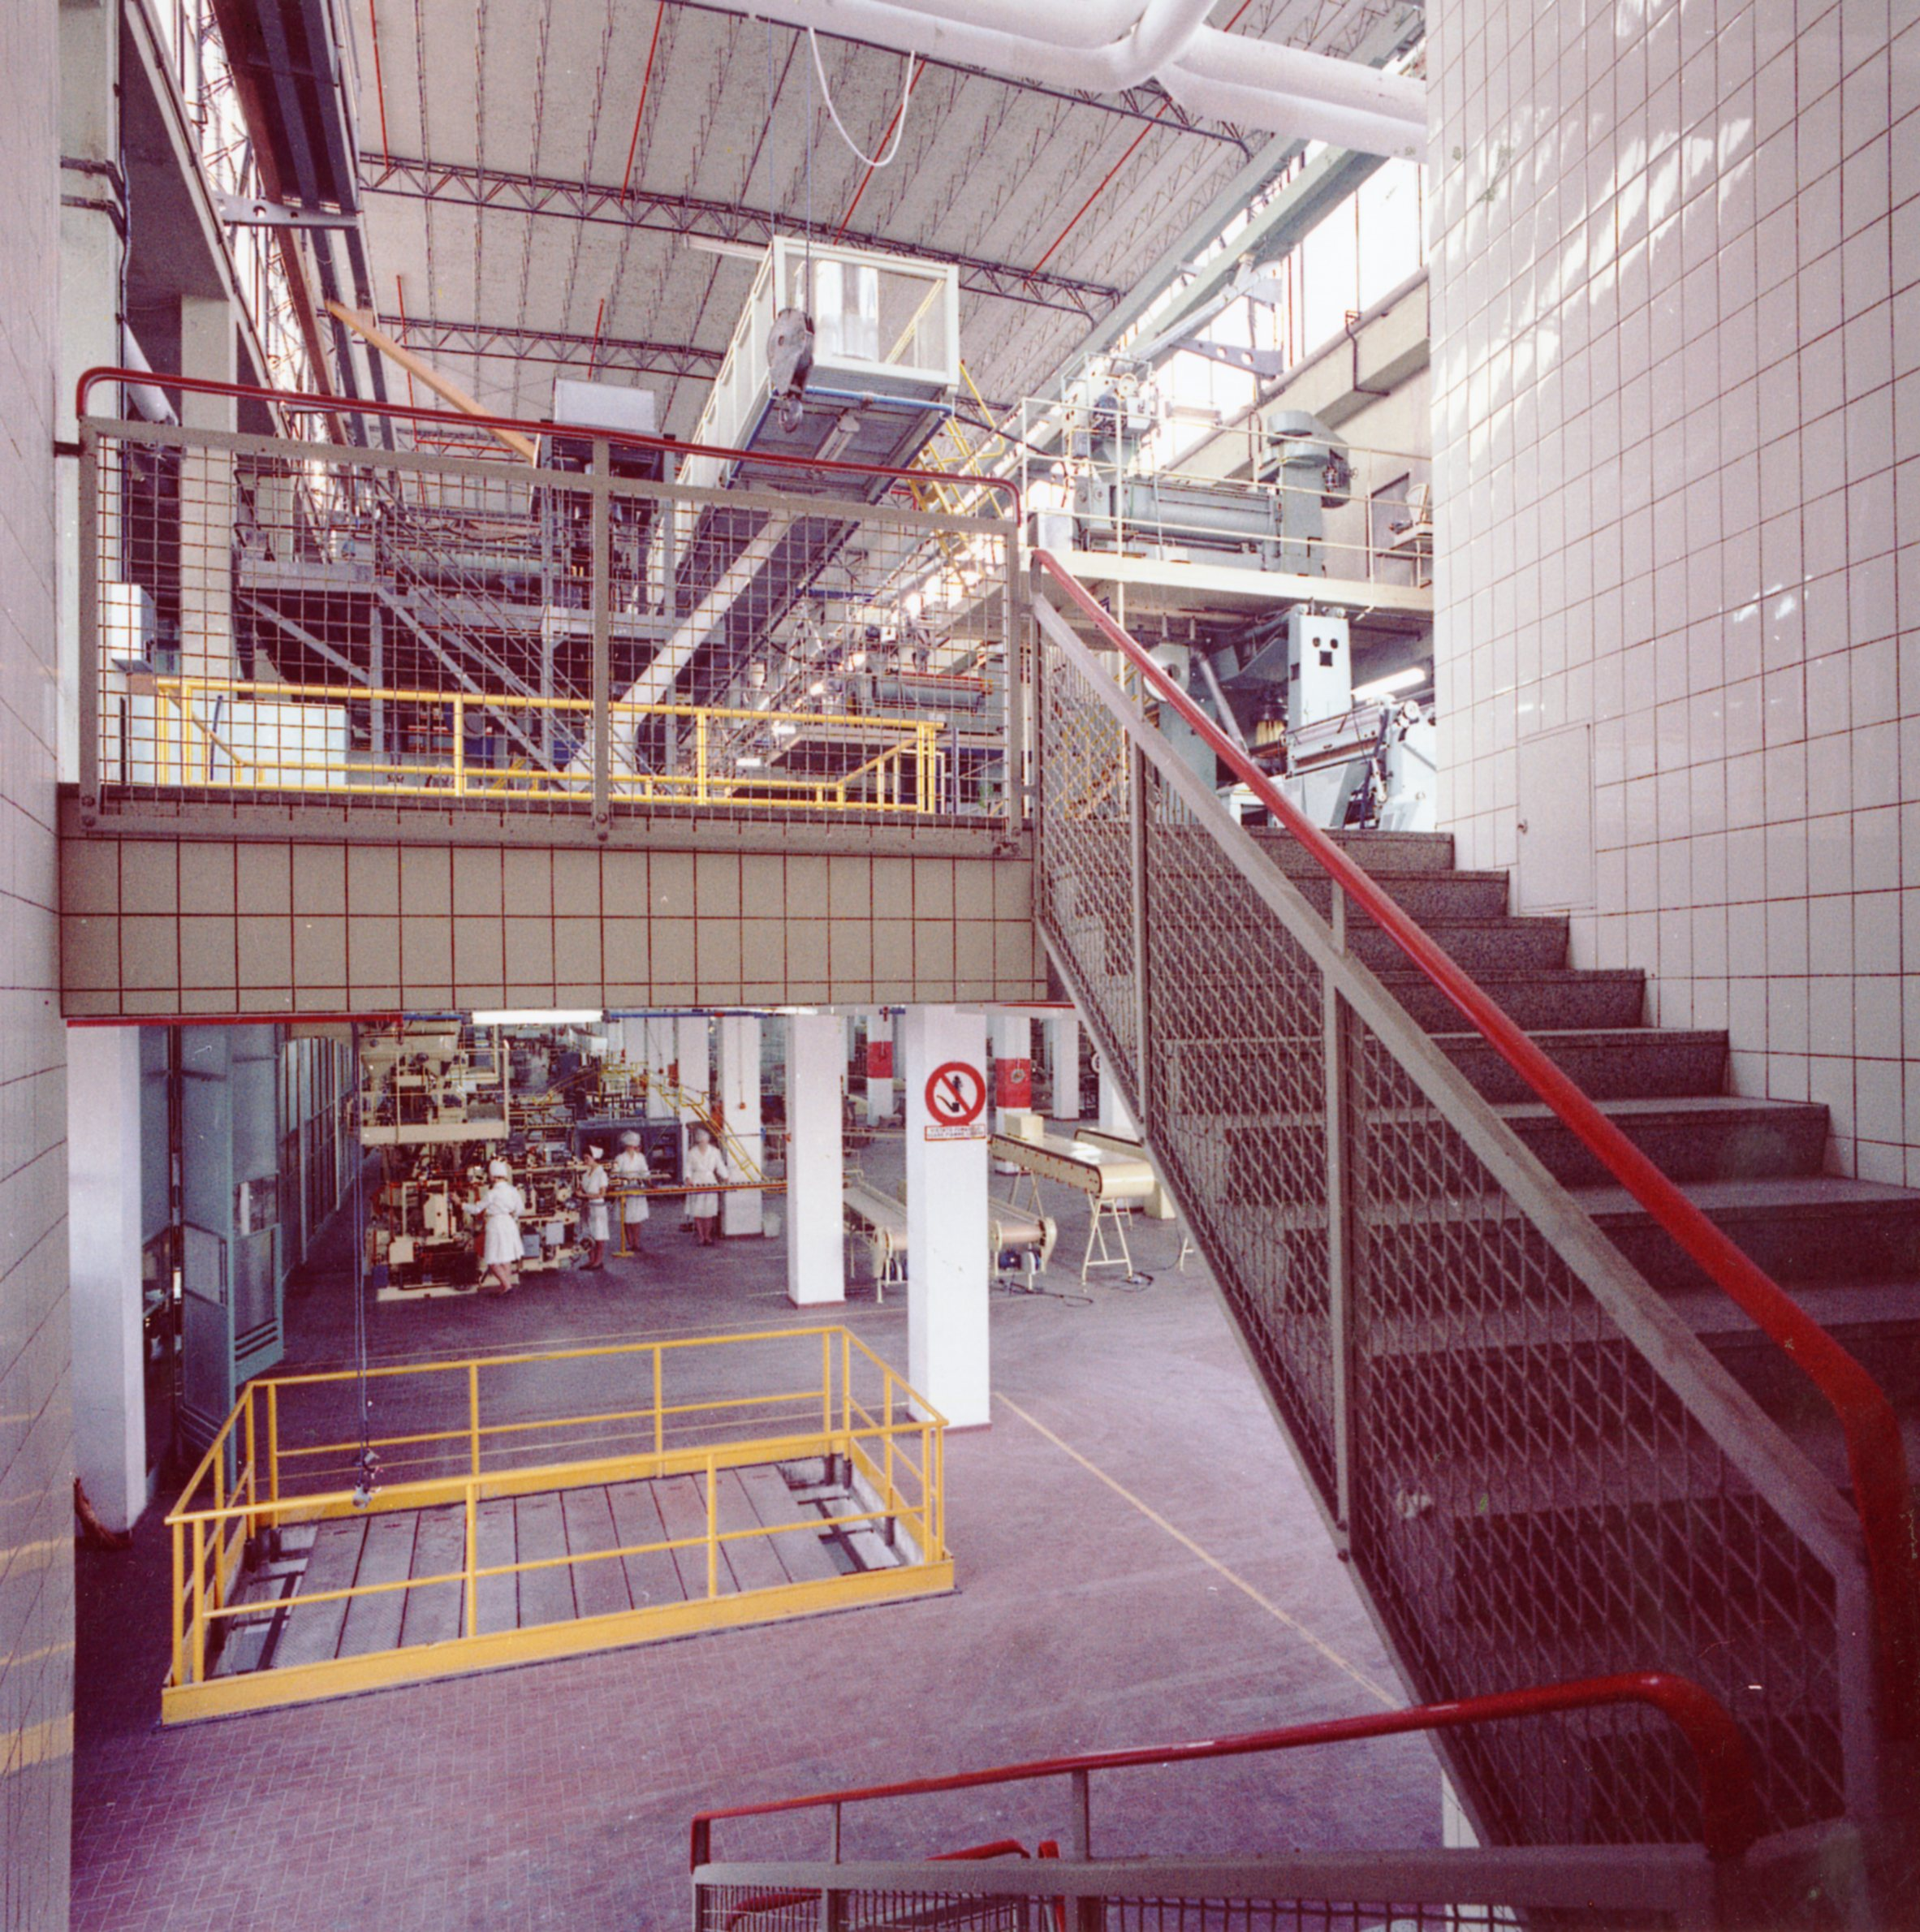 An inner view of the first and second floor of Barilla plant at Barriera Vittorio Emanuele in a photograph by Bruno Vaghi of the early 1960s [ASB, O, Plants].